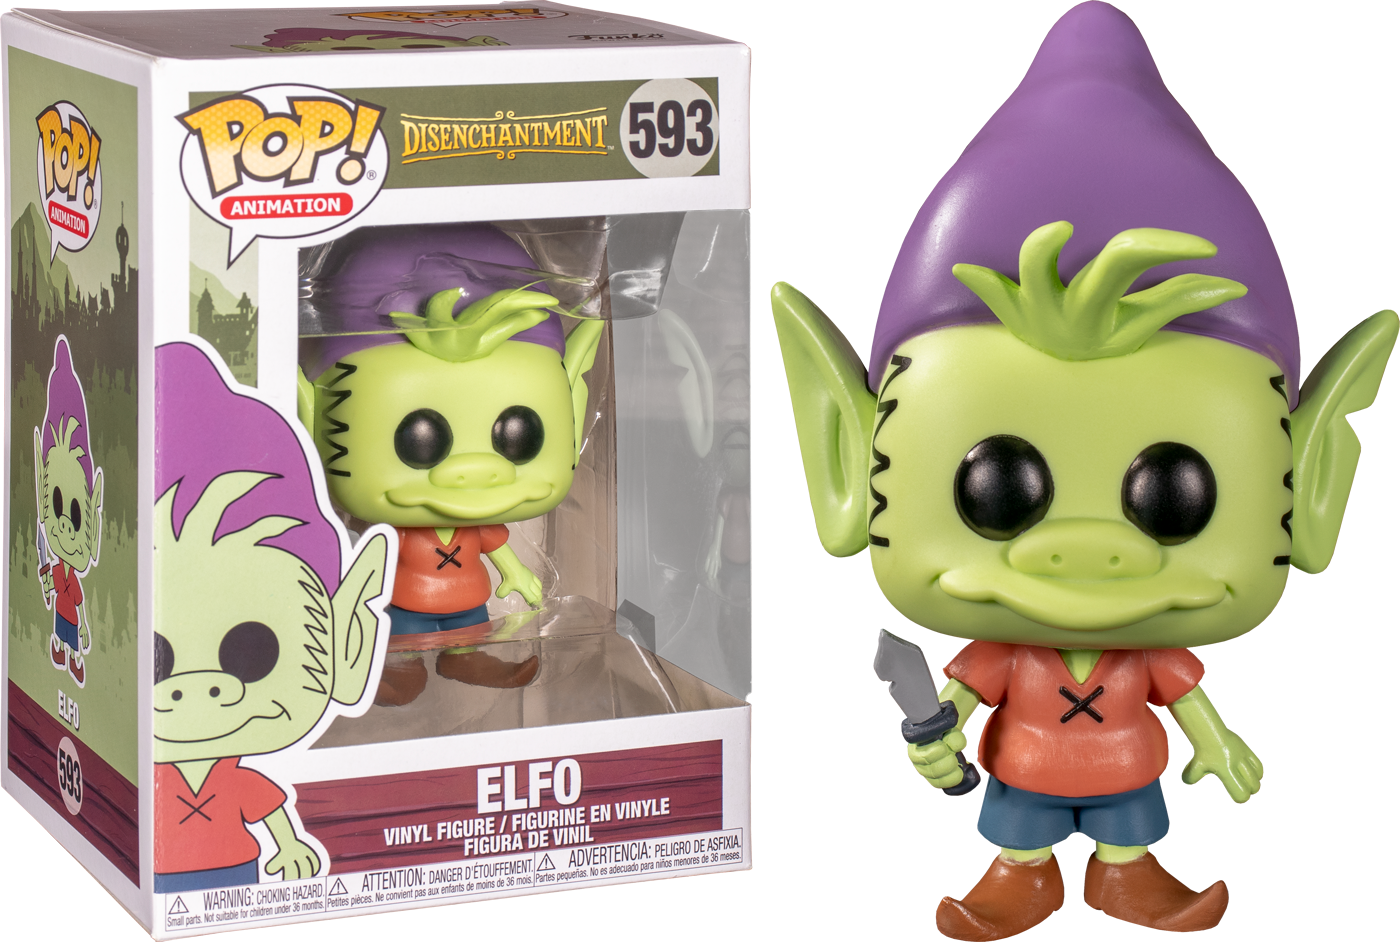 Elfo - Disenchantment Funko Pop!